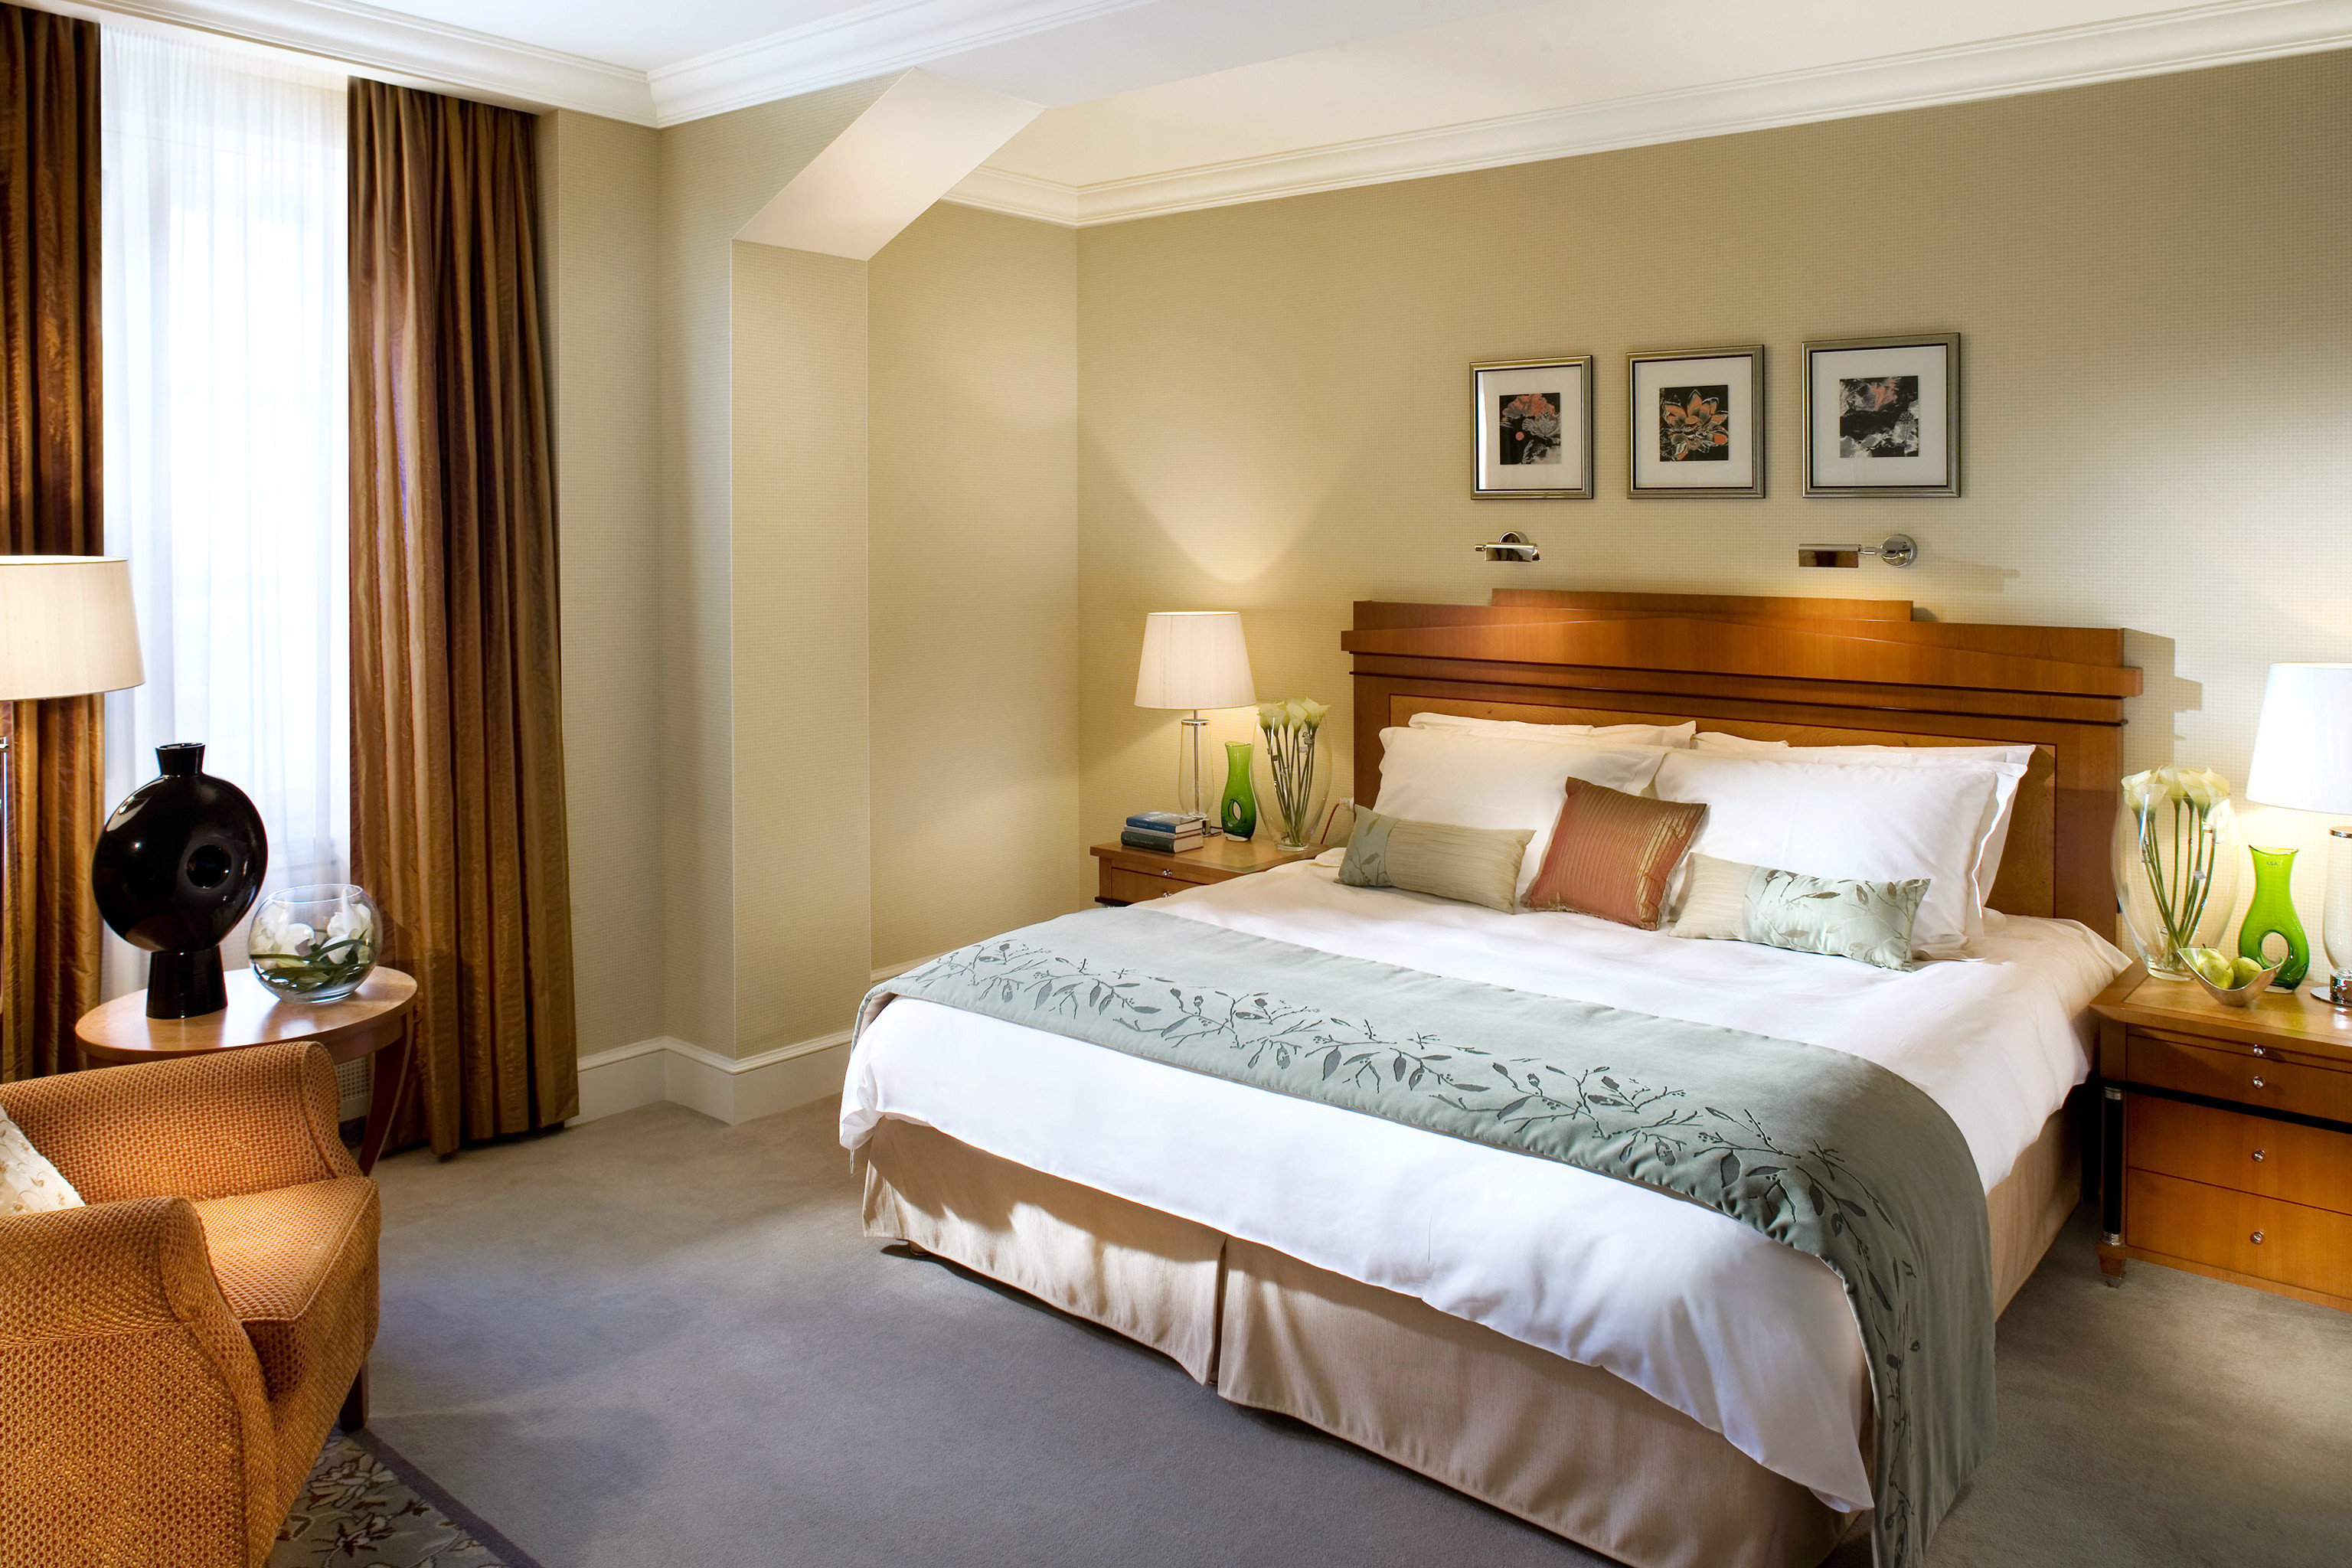 Bedroom City Luxury Suite property cottage containing